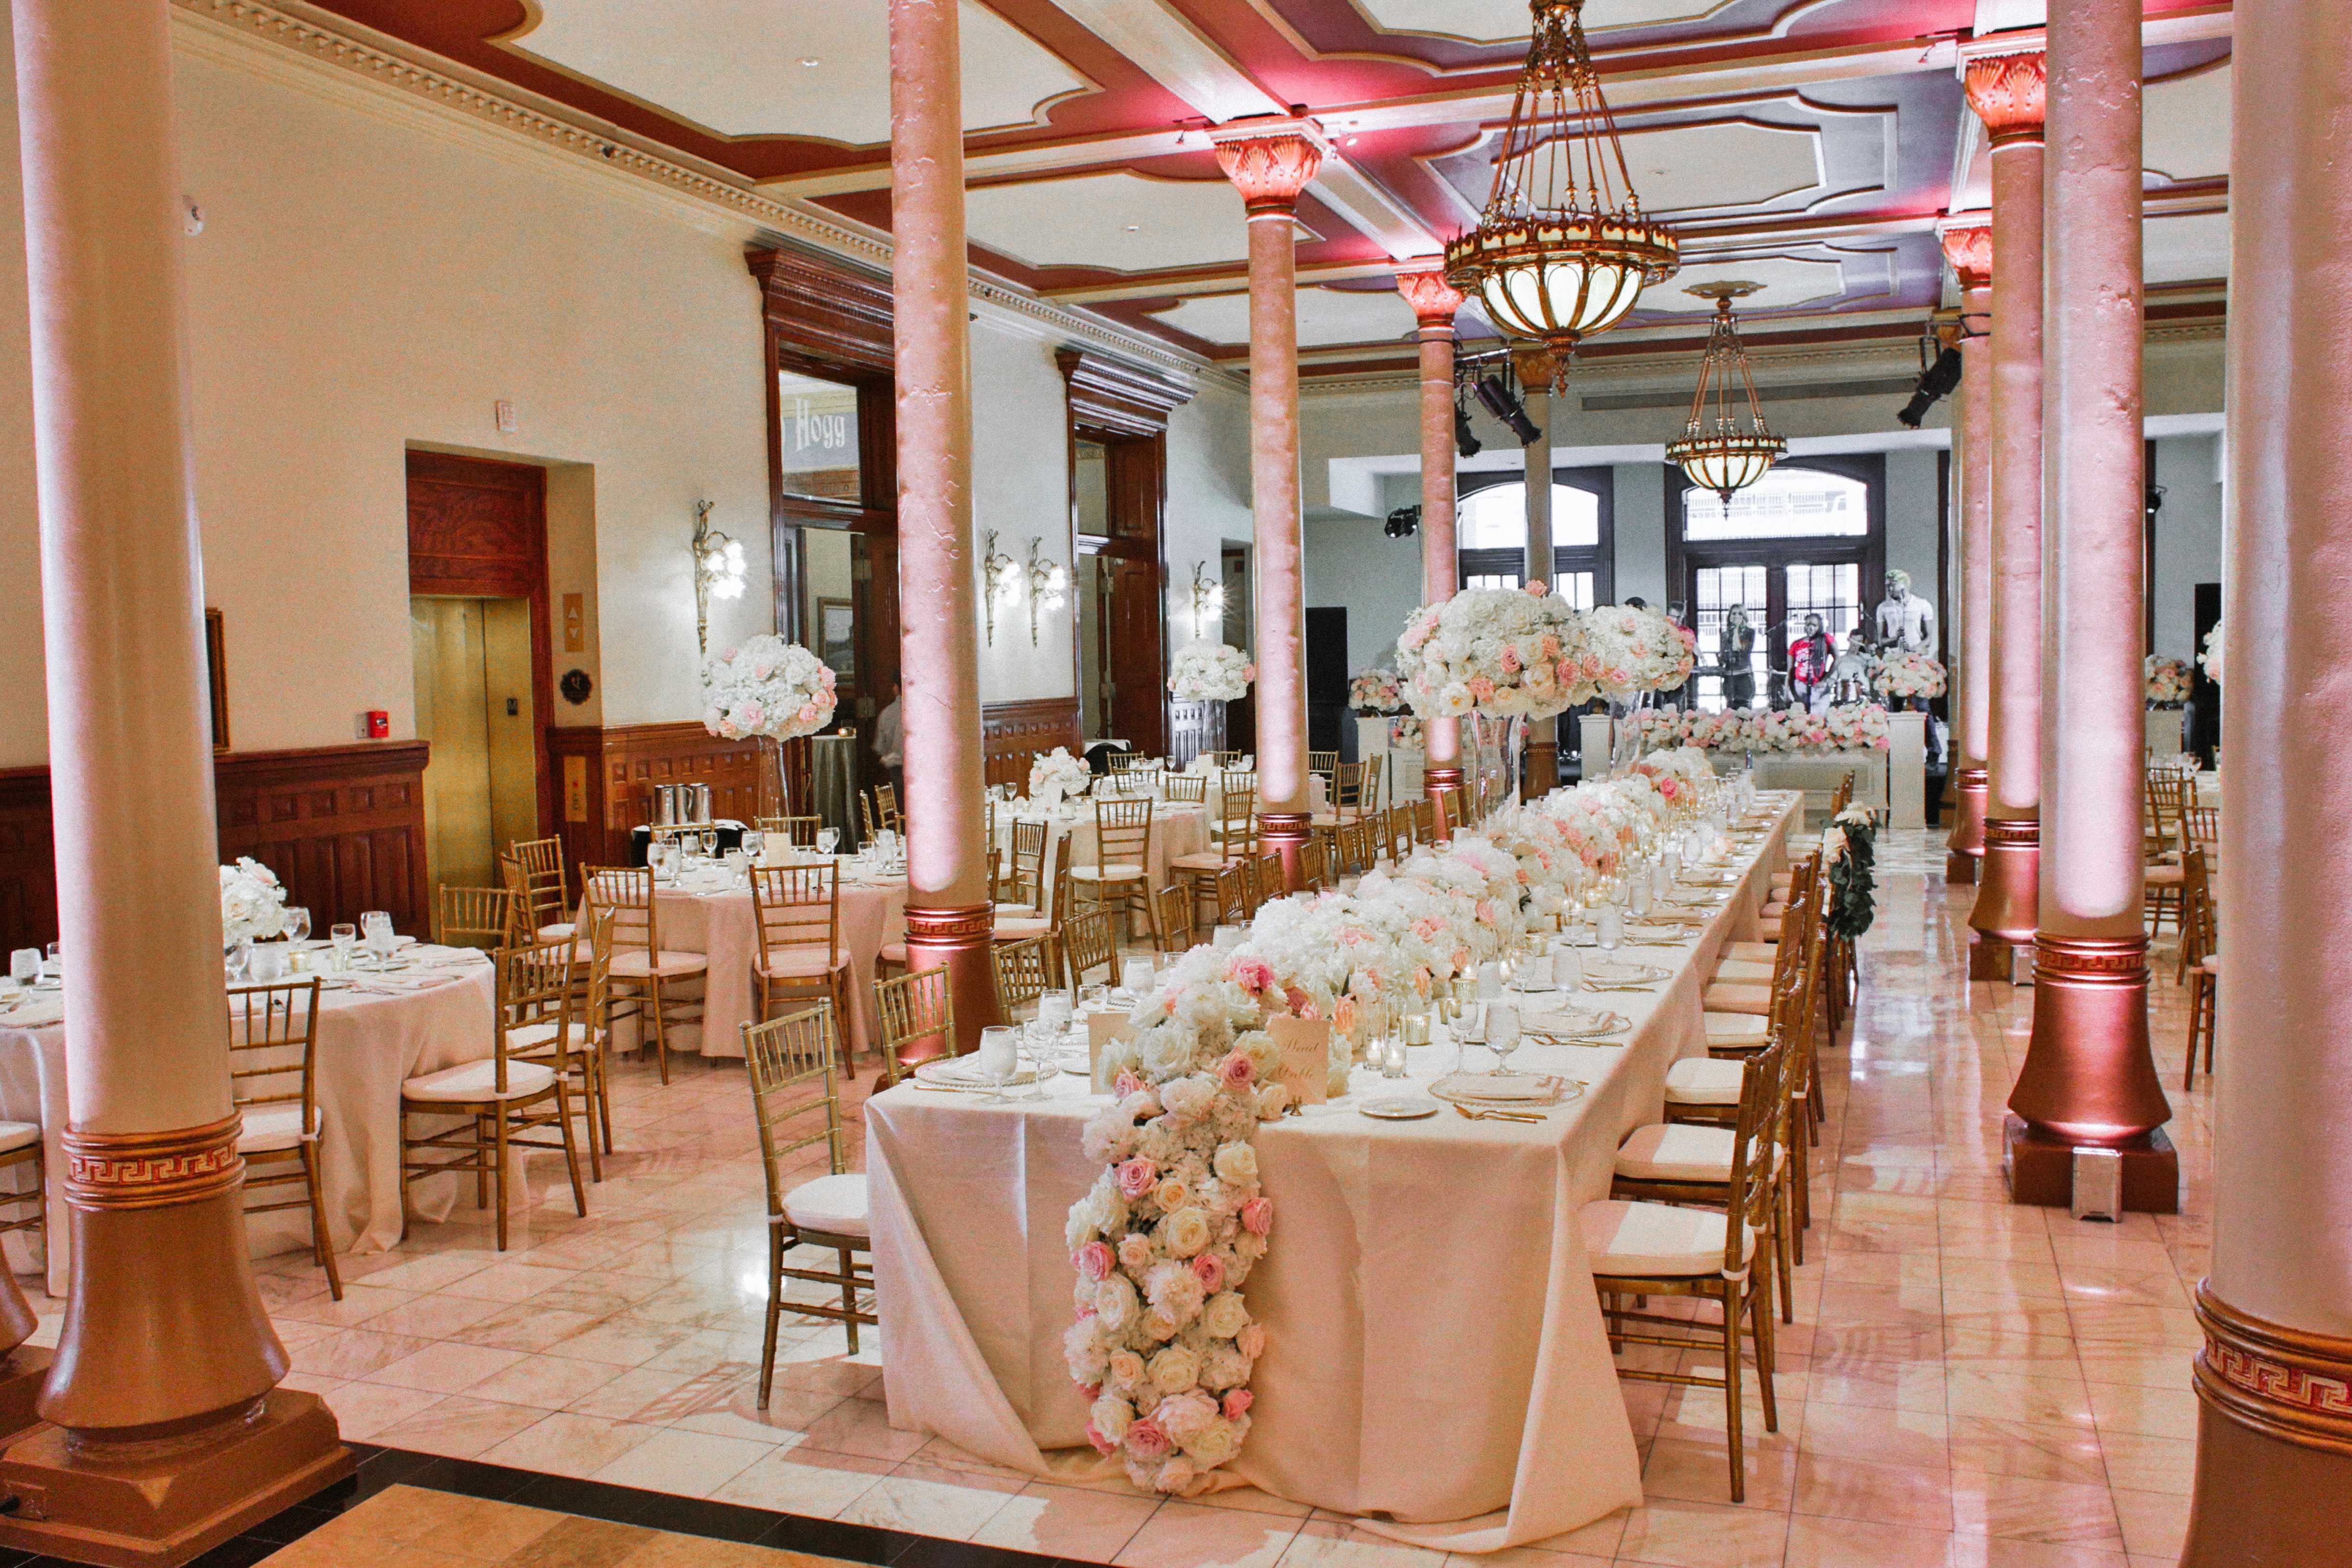 Head Table on Driskill Mezzanine with pink and white flowers